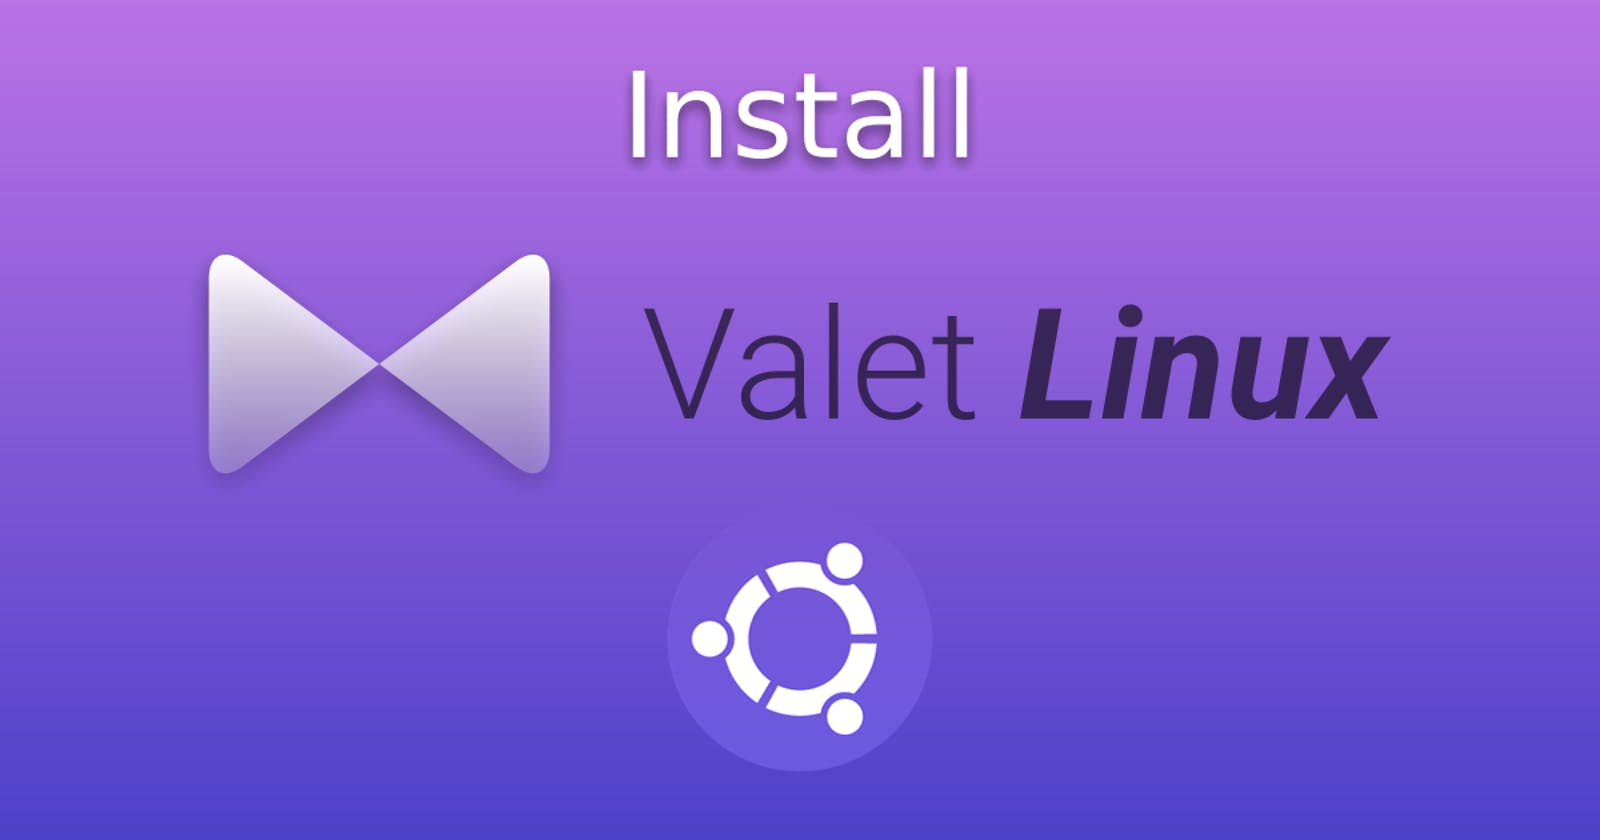 Install Valet Linux on Ubuntu from scratch